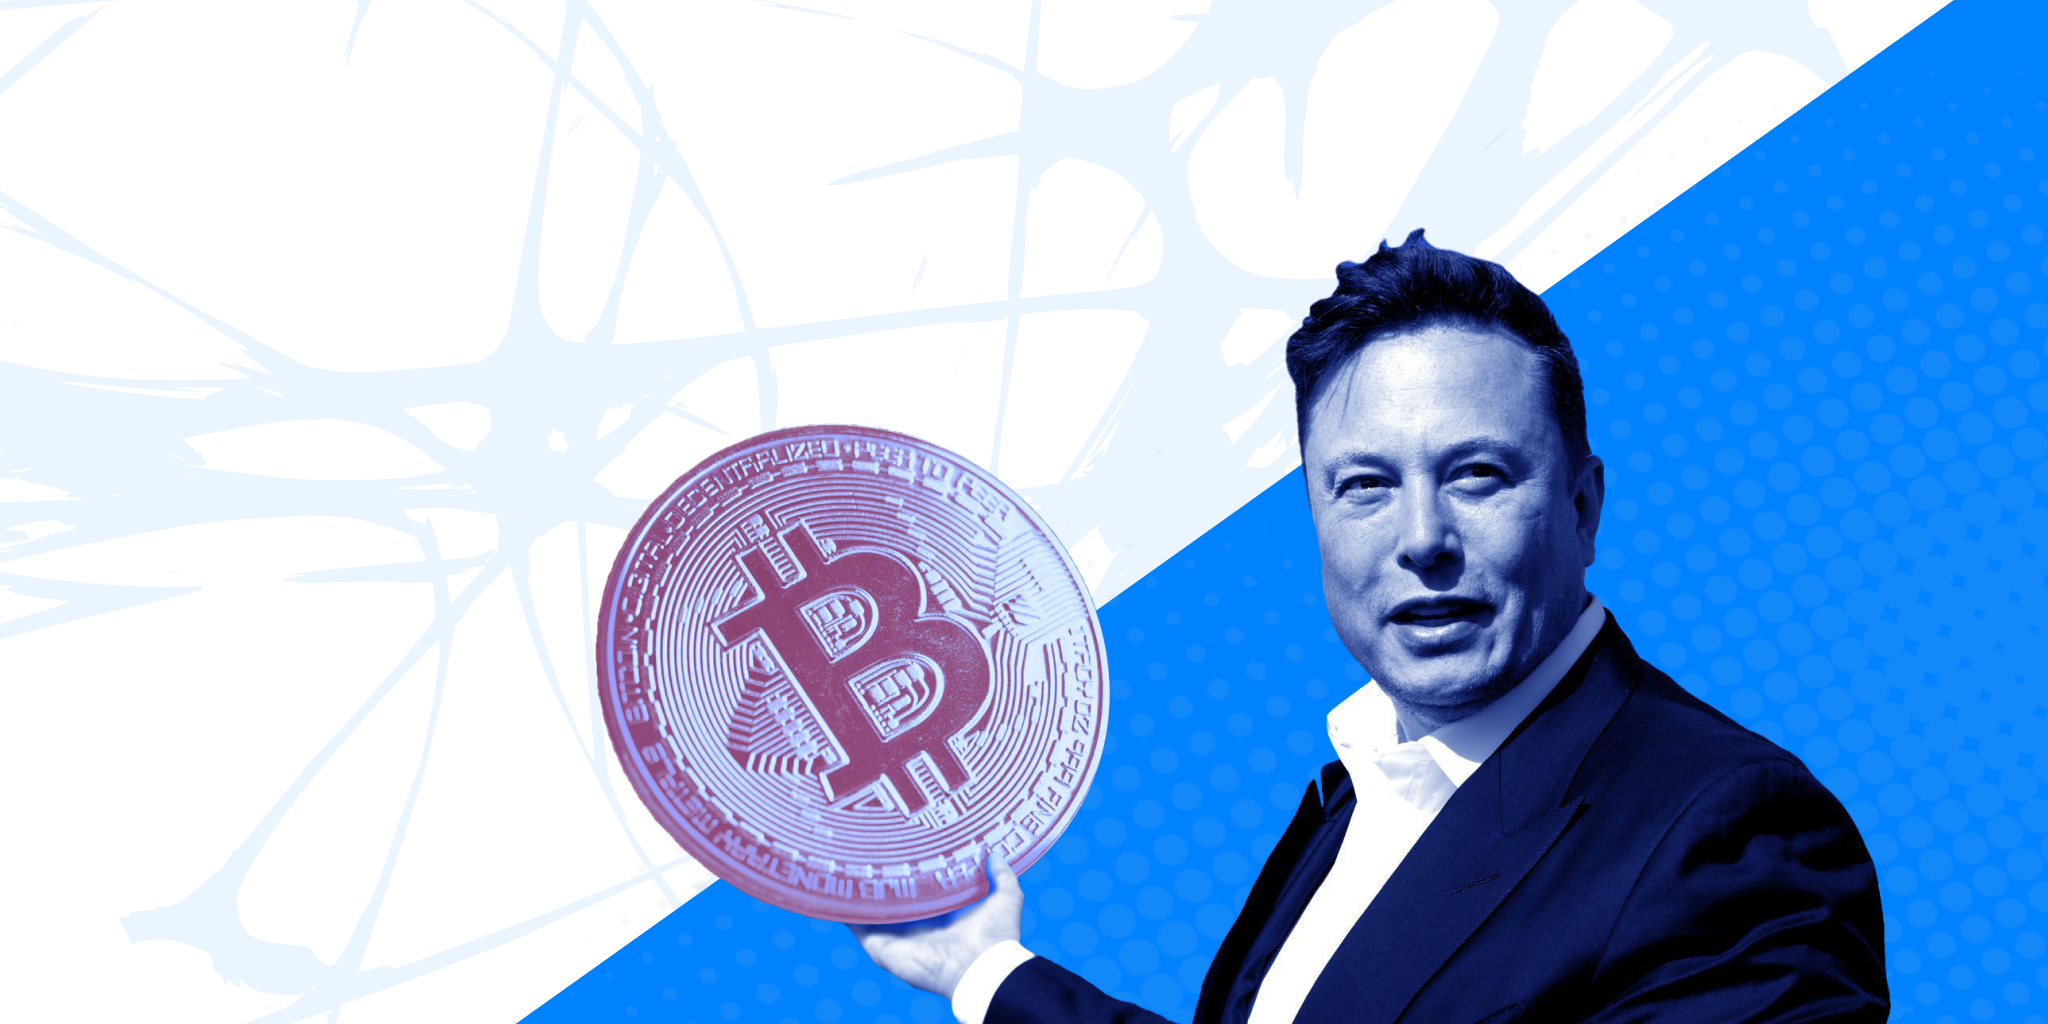 Bitcoin is much better for the environment than Elon Musk claims